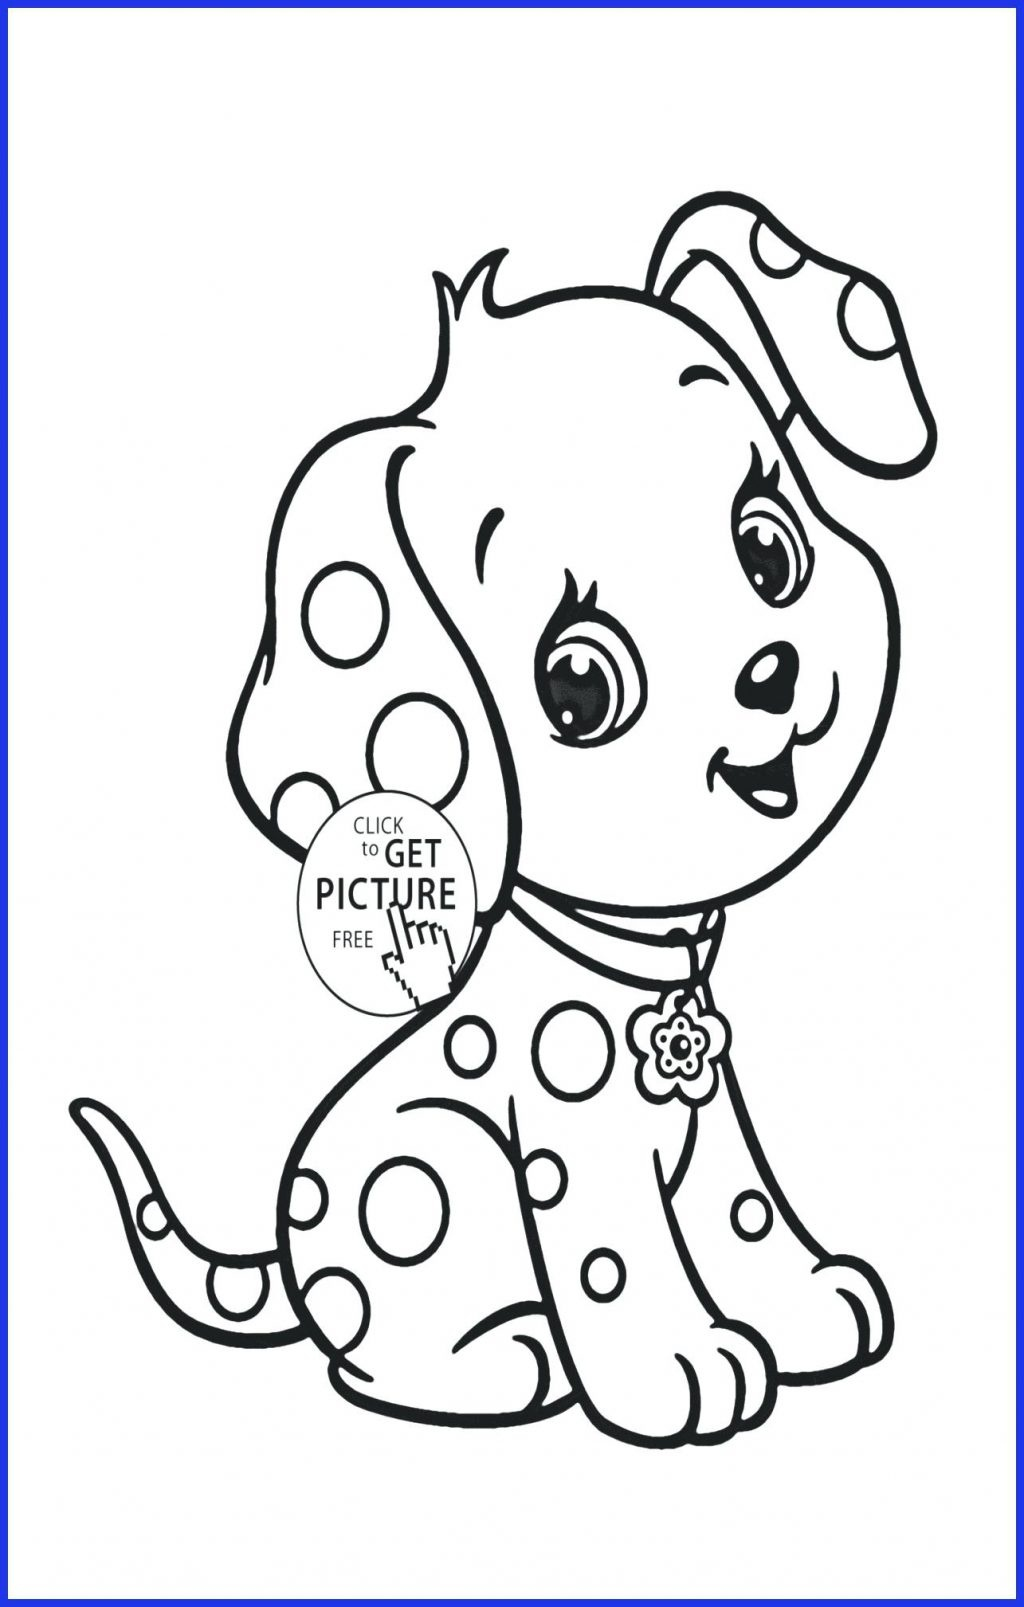 Coloring Page ~ Free Printable Coloring Pages For Toddlers Page - Free Printable Coloring Pages For Toddlers